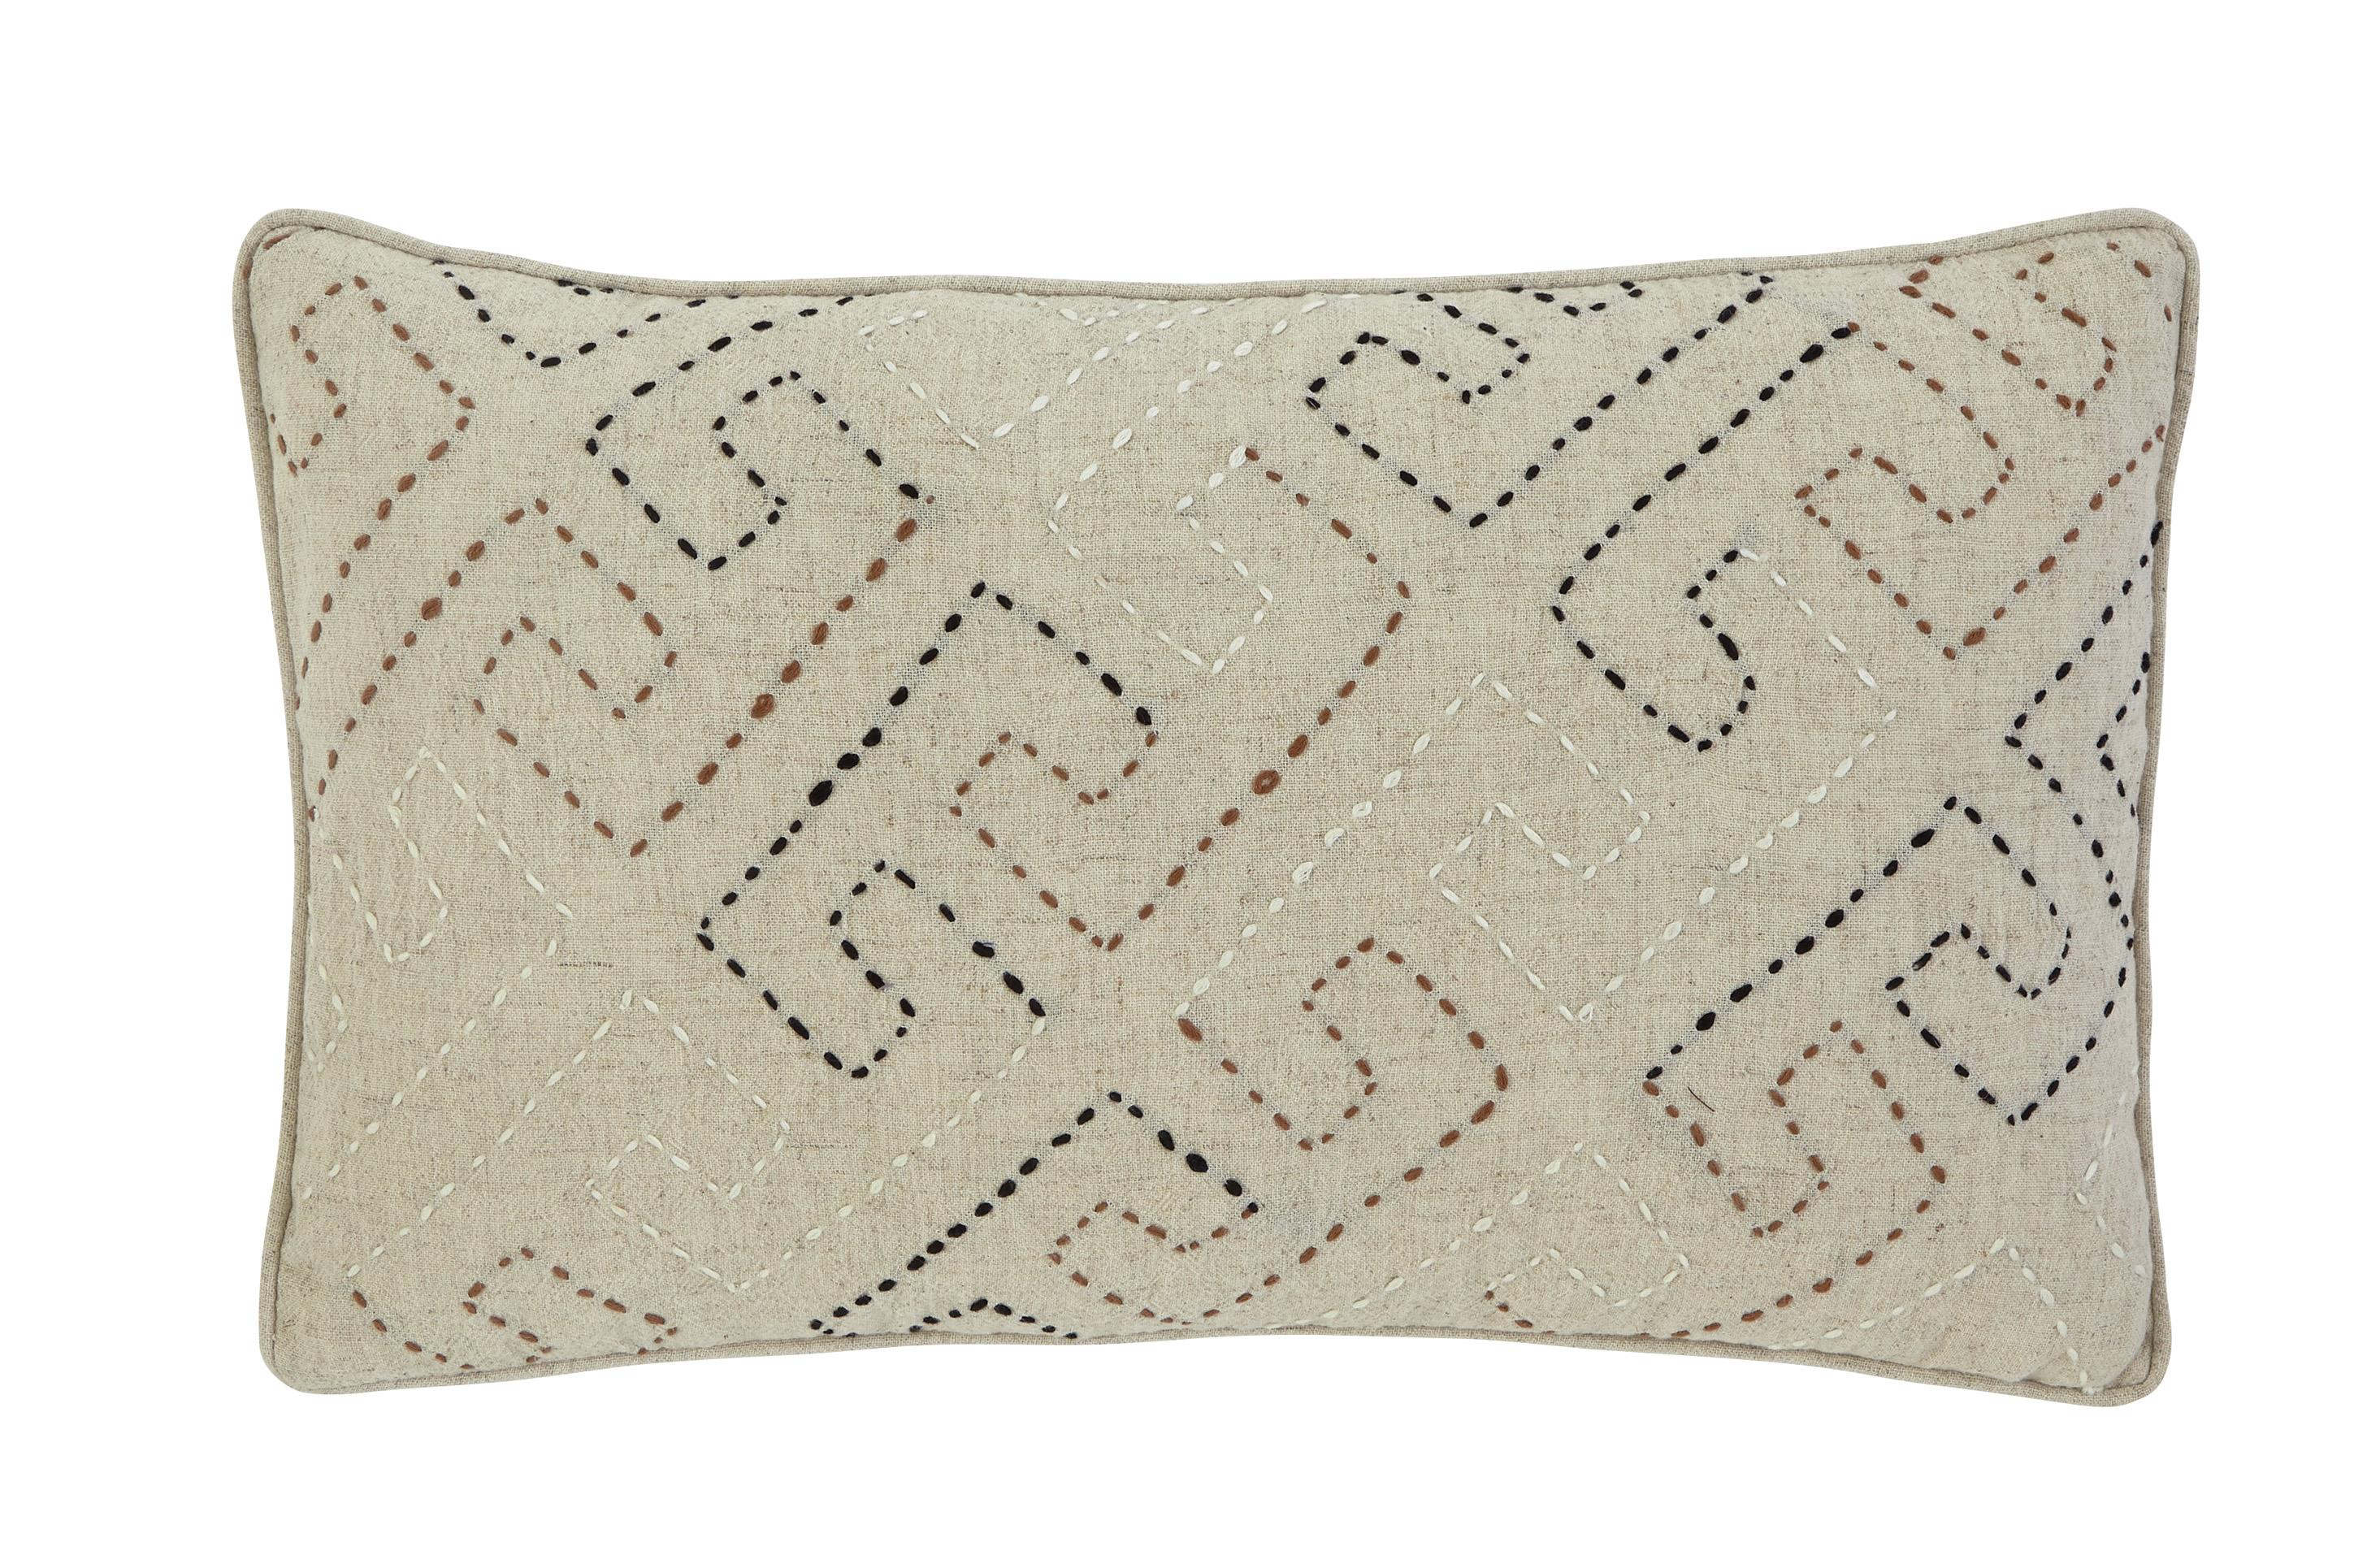 Signature Design by Ashley Pillows Stitched - Natural Lumbar Pillow - Item Number: A1000288P